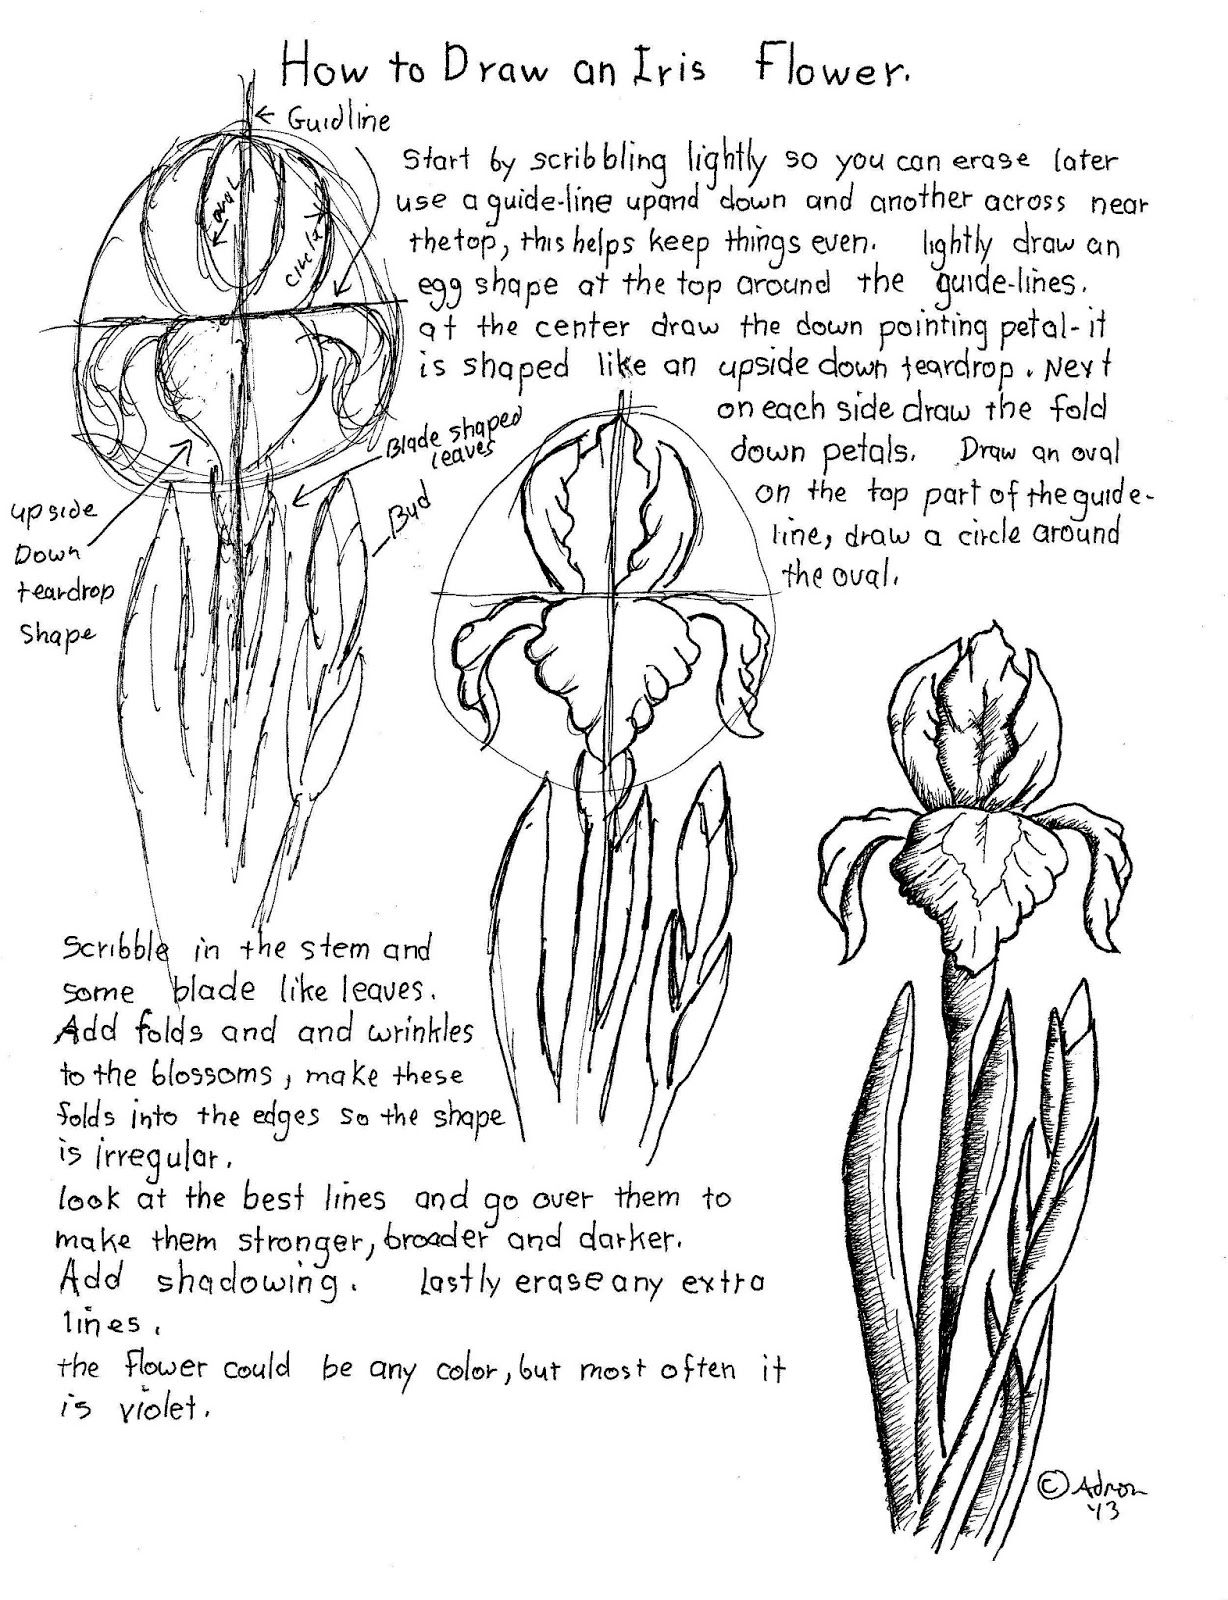 How to draw an iris flower worksheet project notes at the blog how to draw an iris flower worksheet project notes at the blog izmirmasajfo